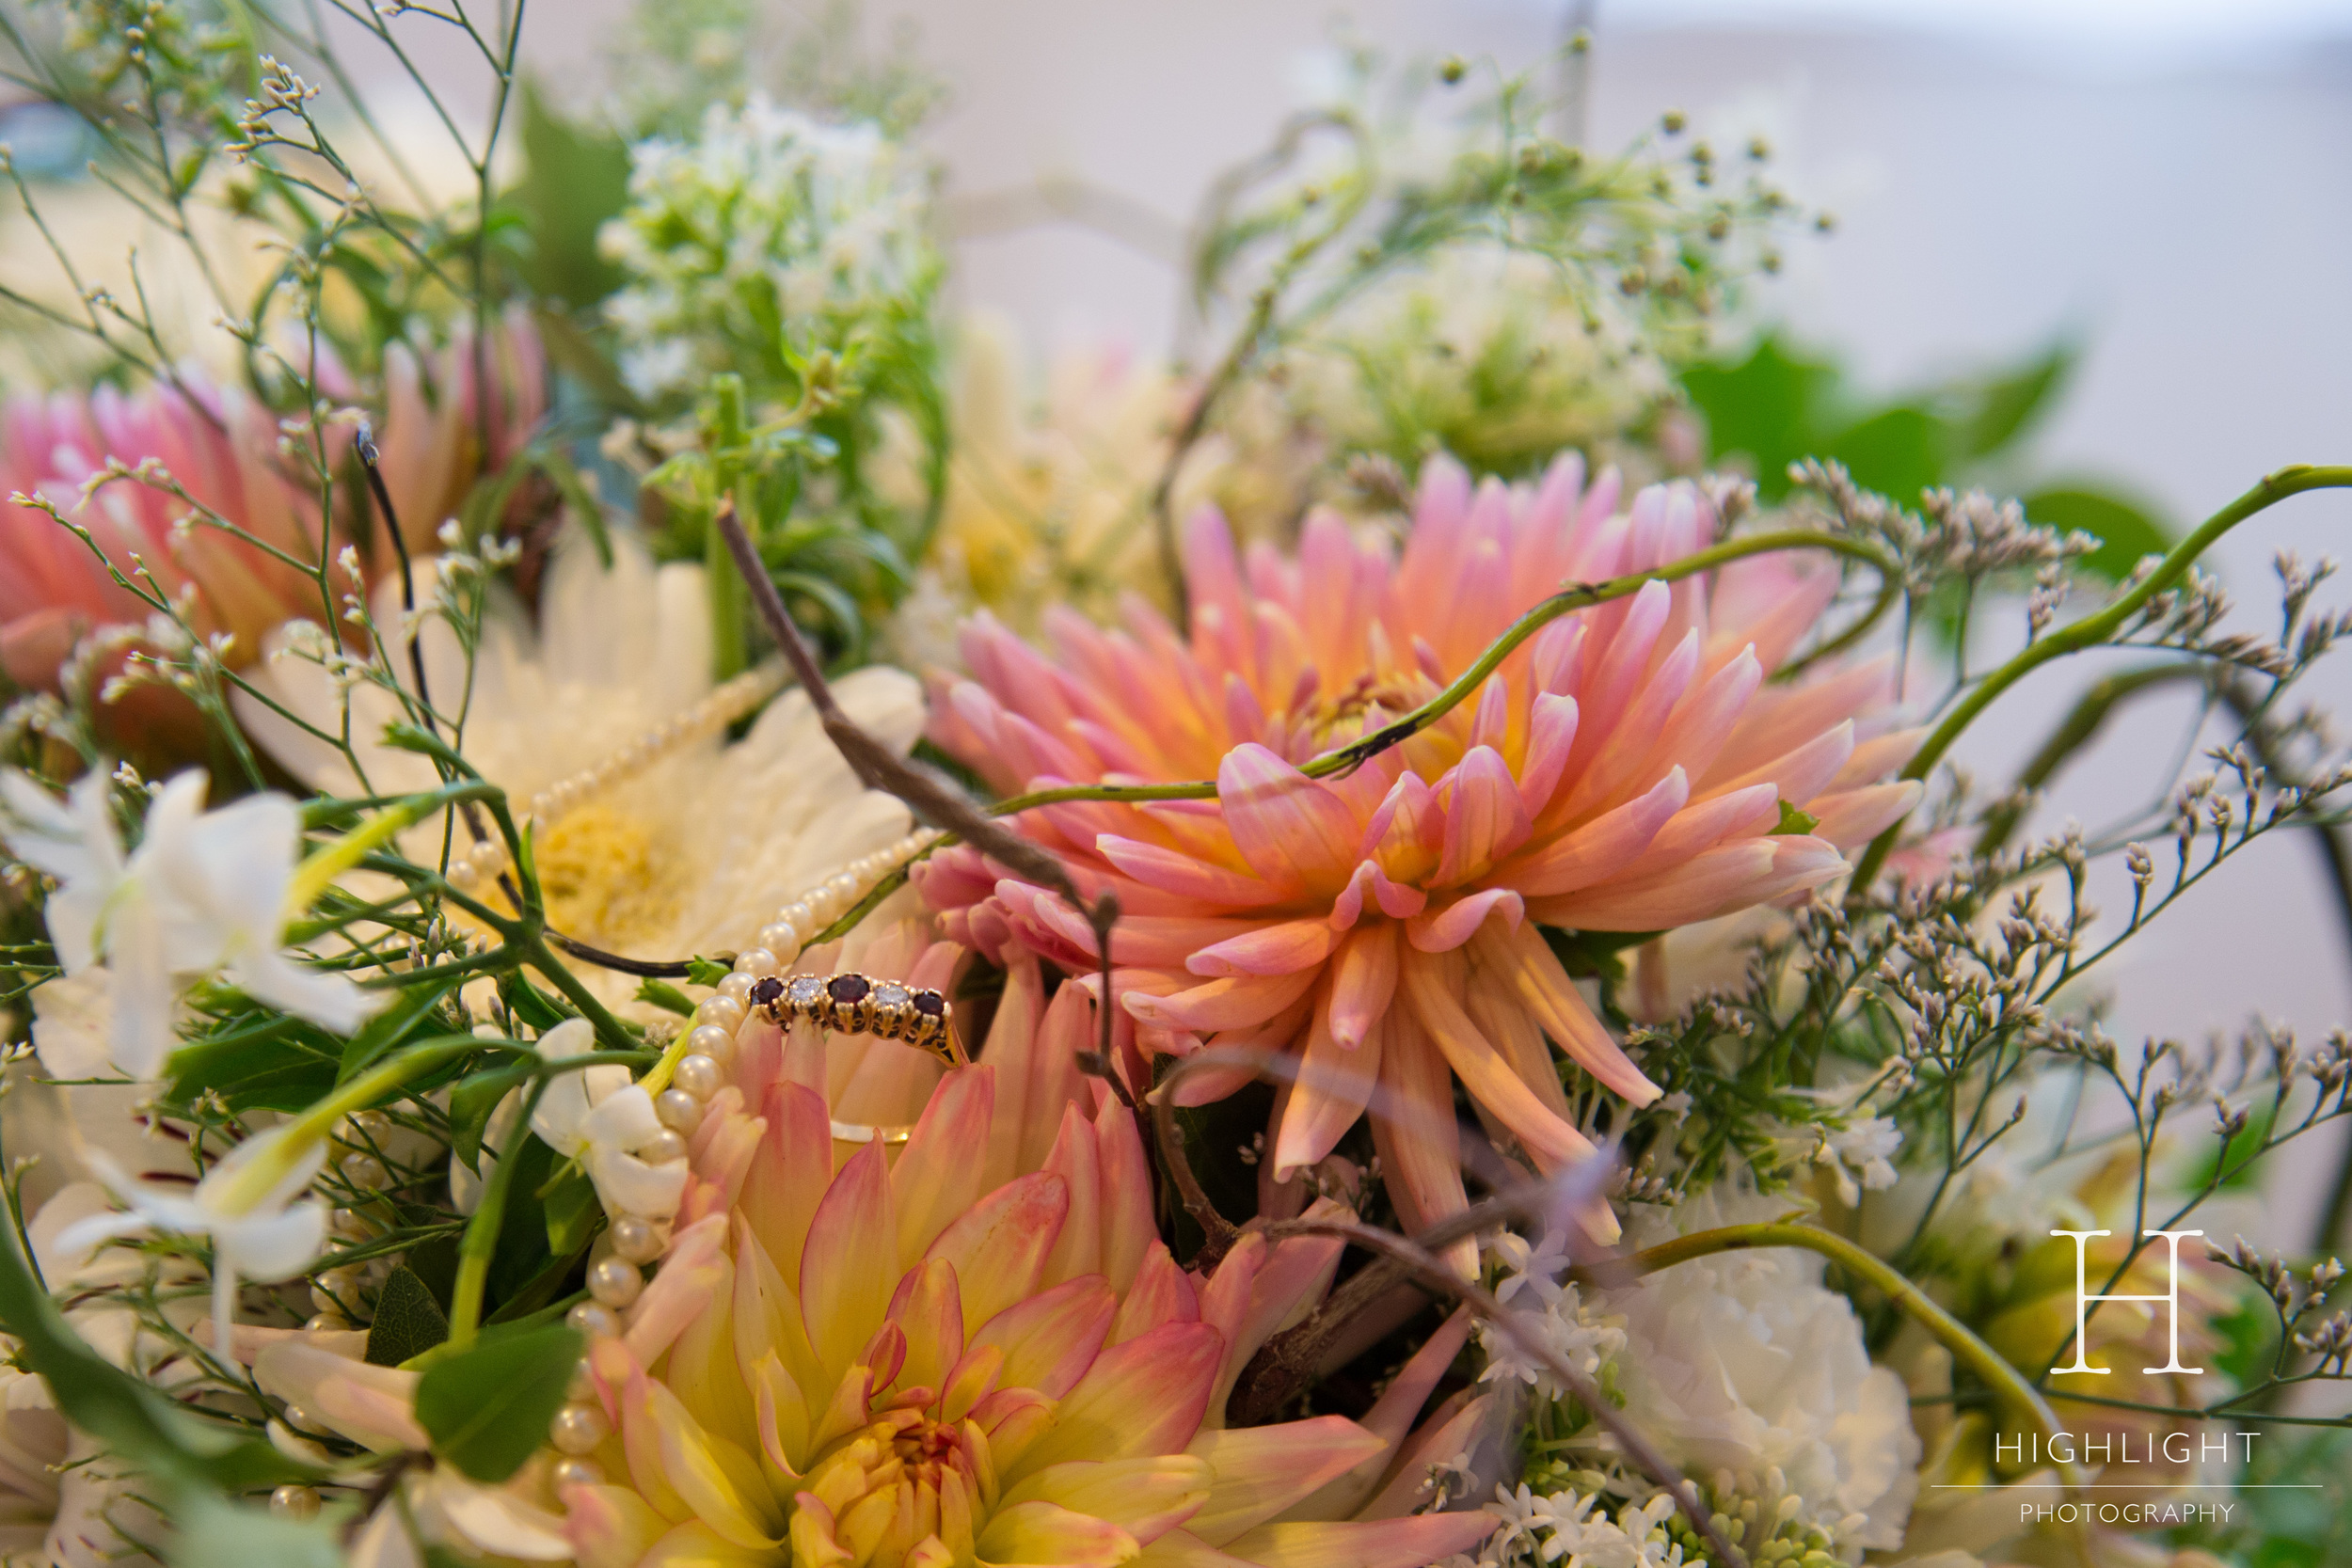 highlight_photography_wedding_new_zealand_flowers.jpg